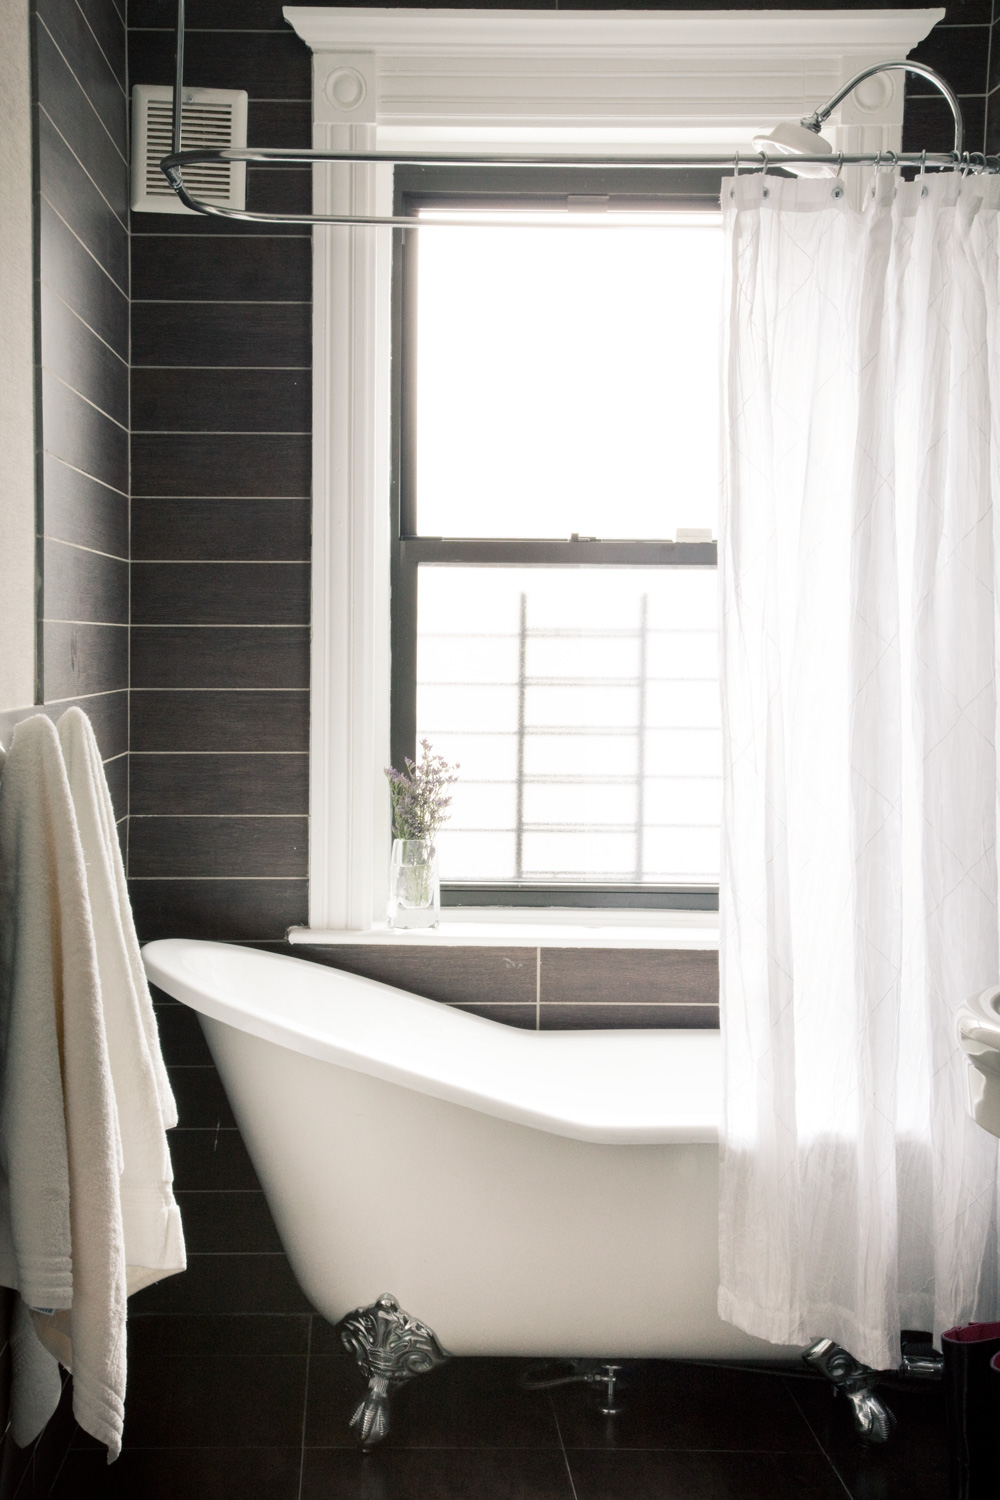 interior design master bathroom french bedstuy